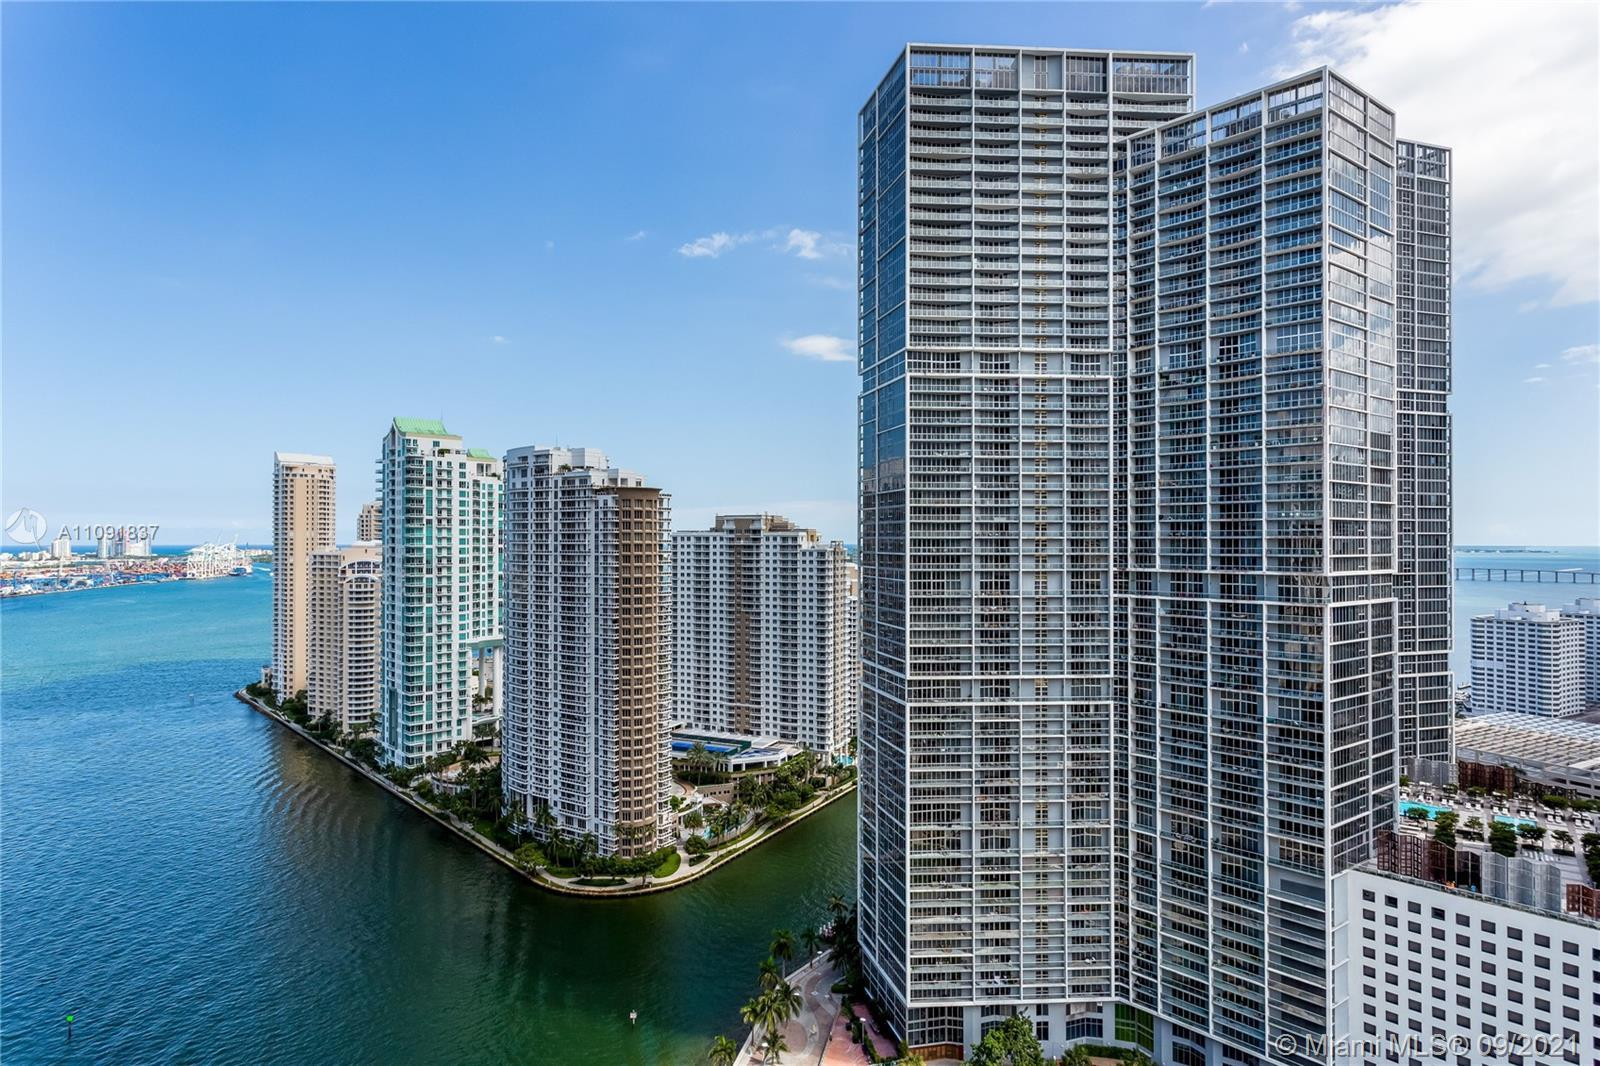 2 beds+den,2 baths. A precious unit with east-south views of the Biscayne bay and lightning city. EP